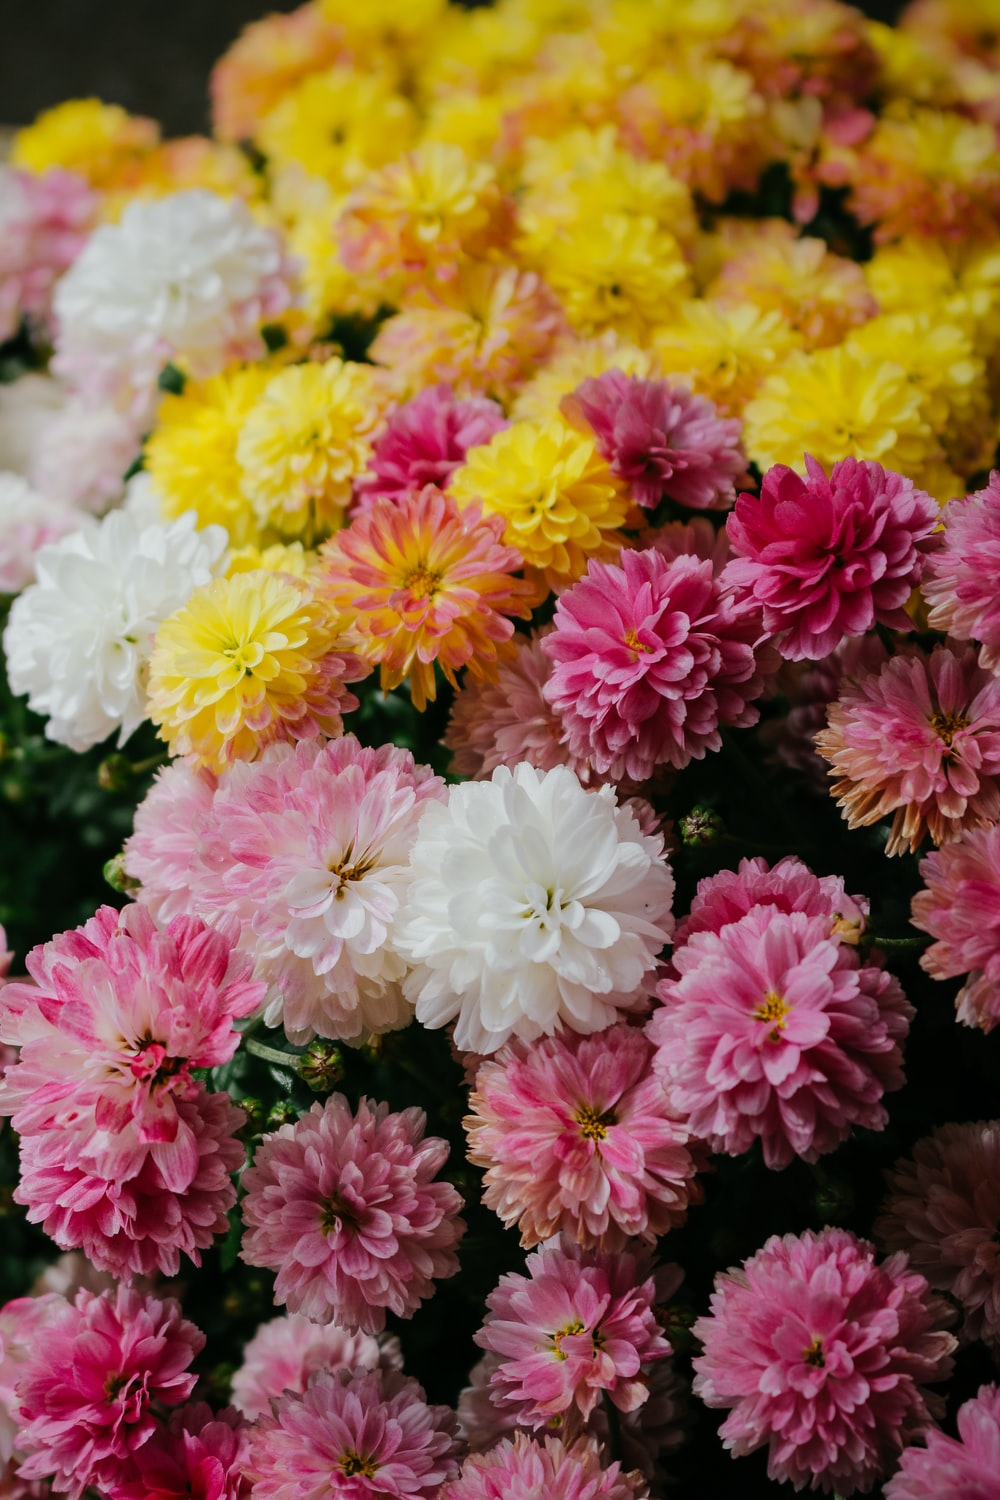 Pink yellow and white flowers photo by ibrahim rifath photoripey pink yellow and white flowers photo by ibrahim rifath photoripey on unsplash mightylinksfo